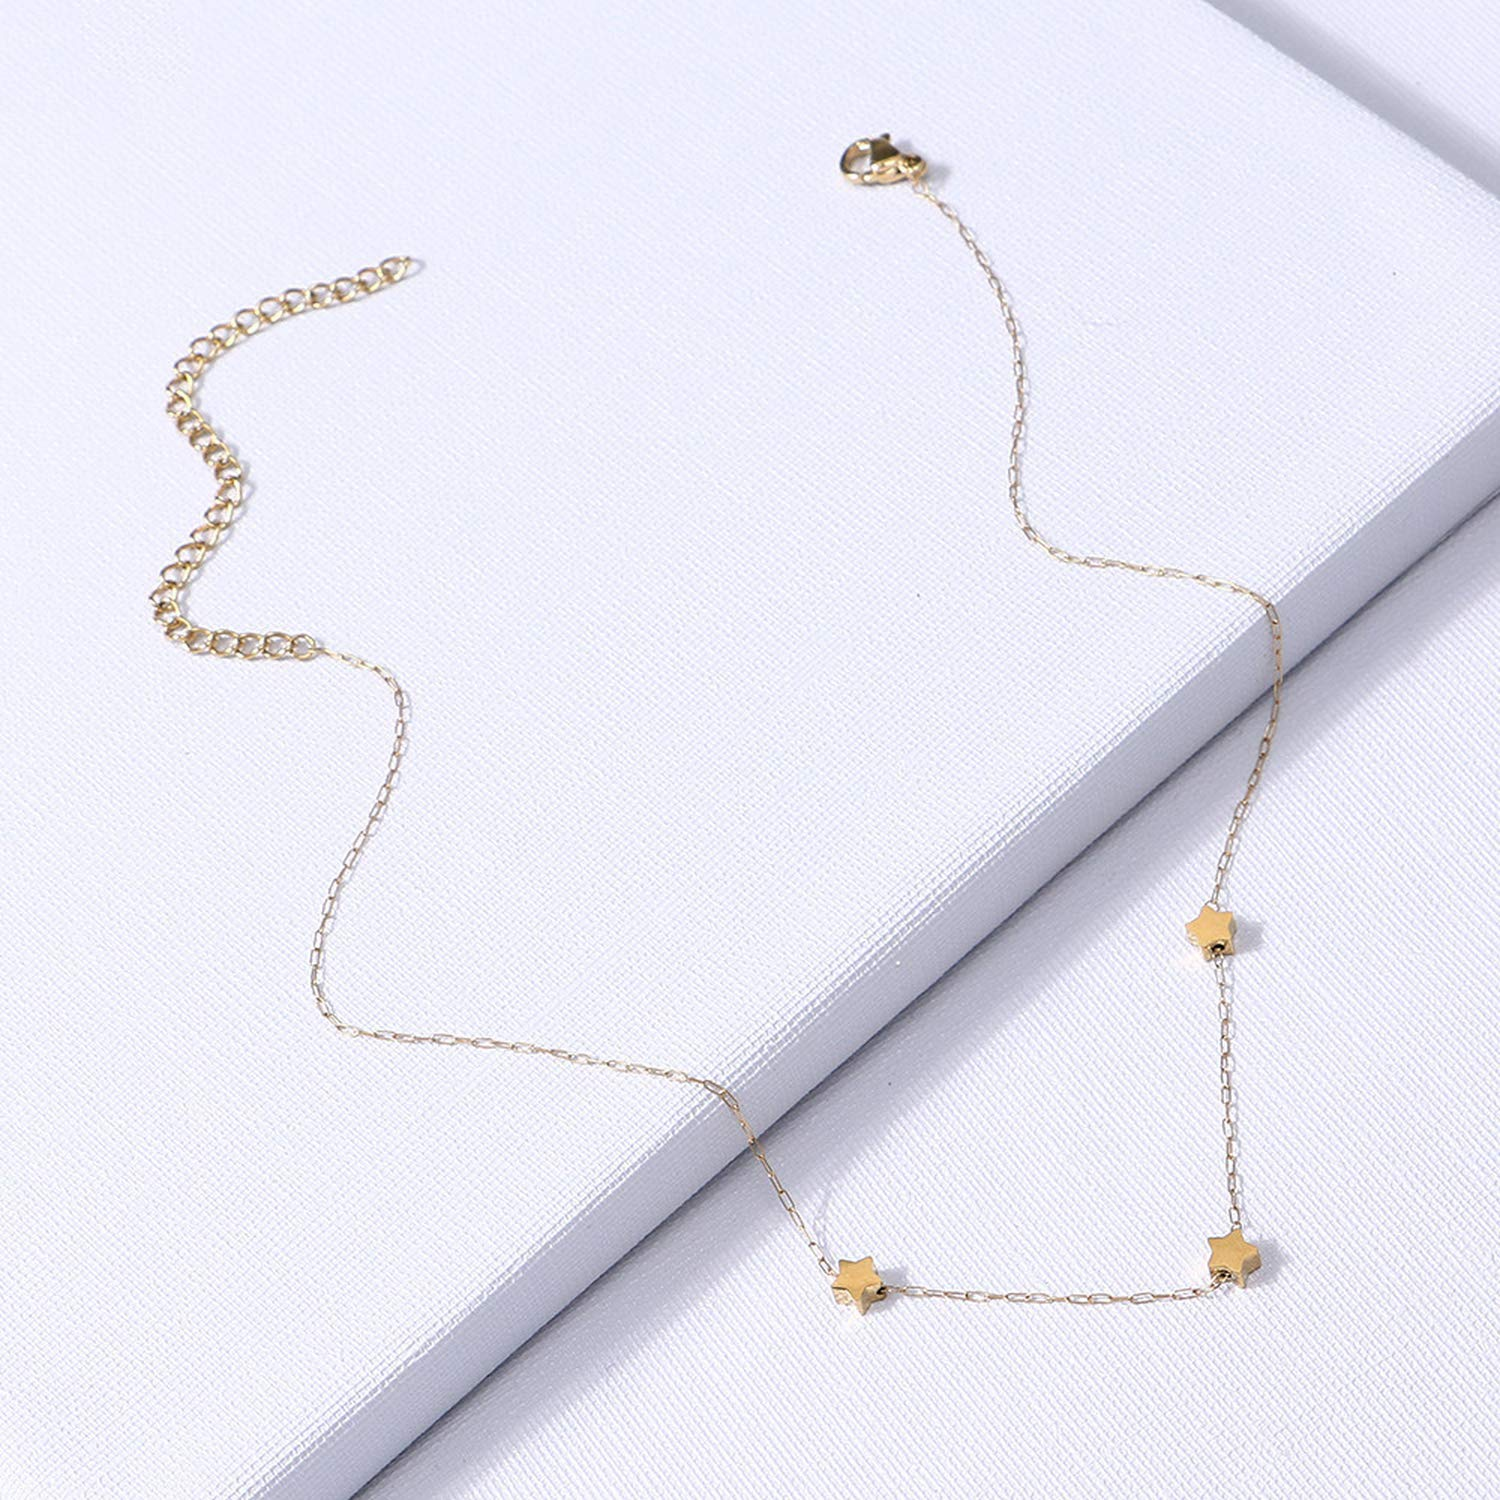 Minusone Stainless Steel Chain Necklace Women Fashion Jewelry Golden Star Pendant Short Necklaces Gift